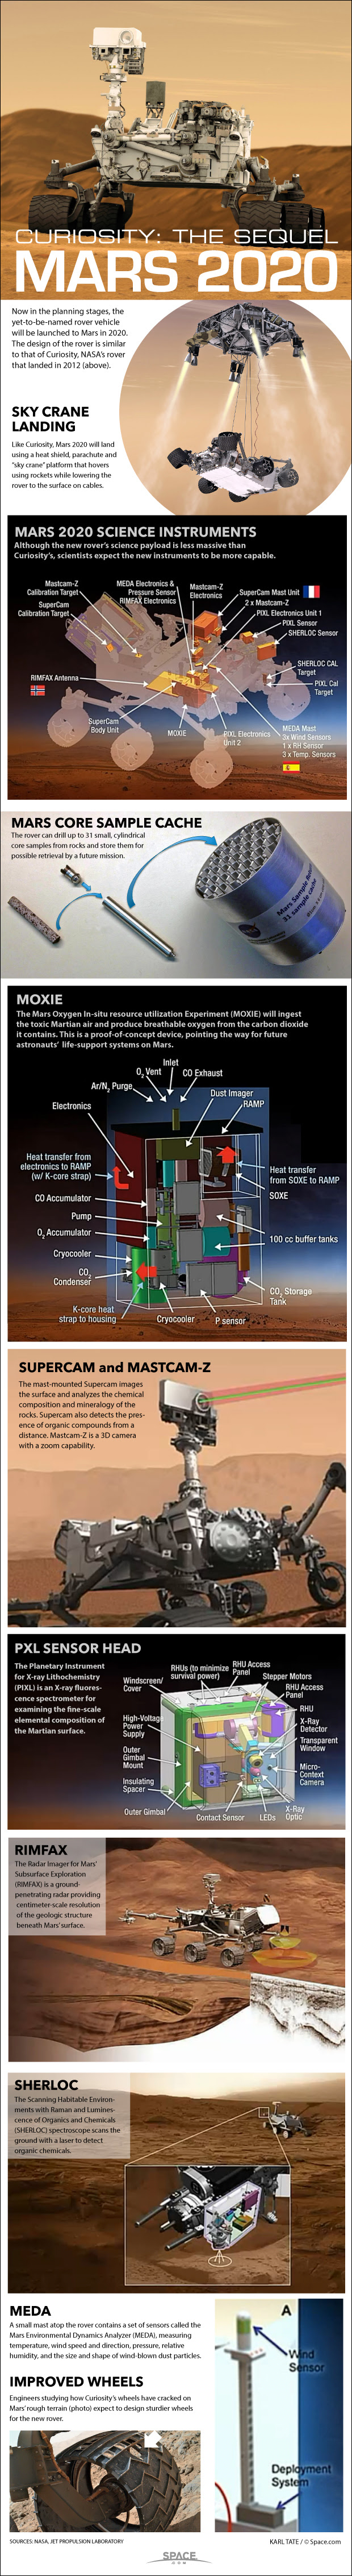 Details of the science instruments on Mars 2020